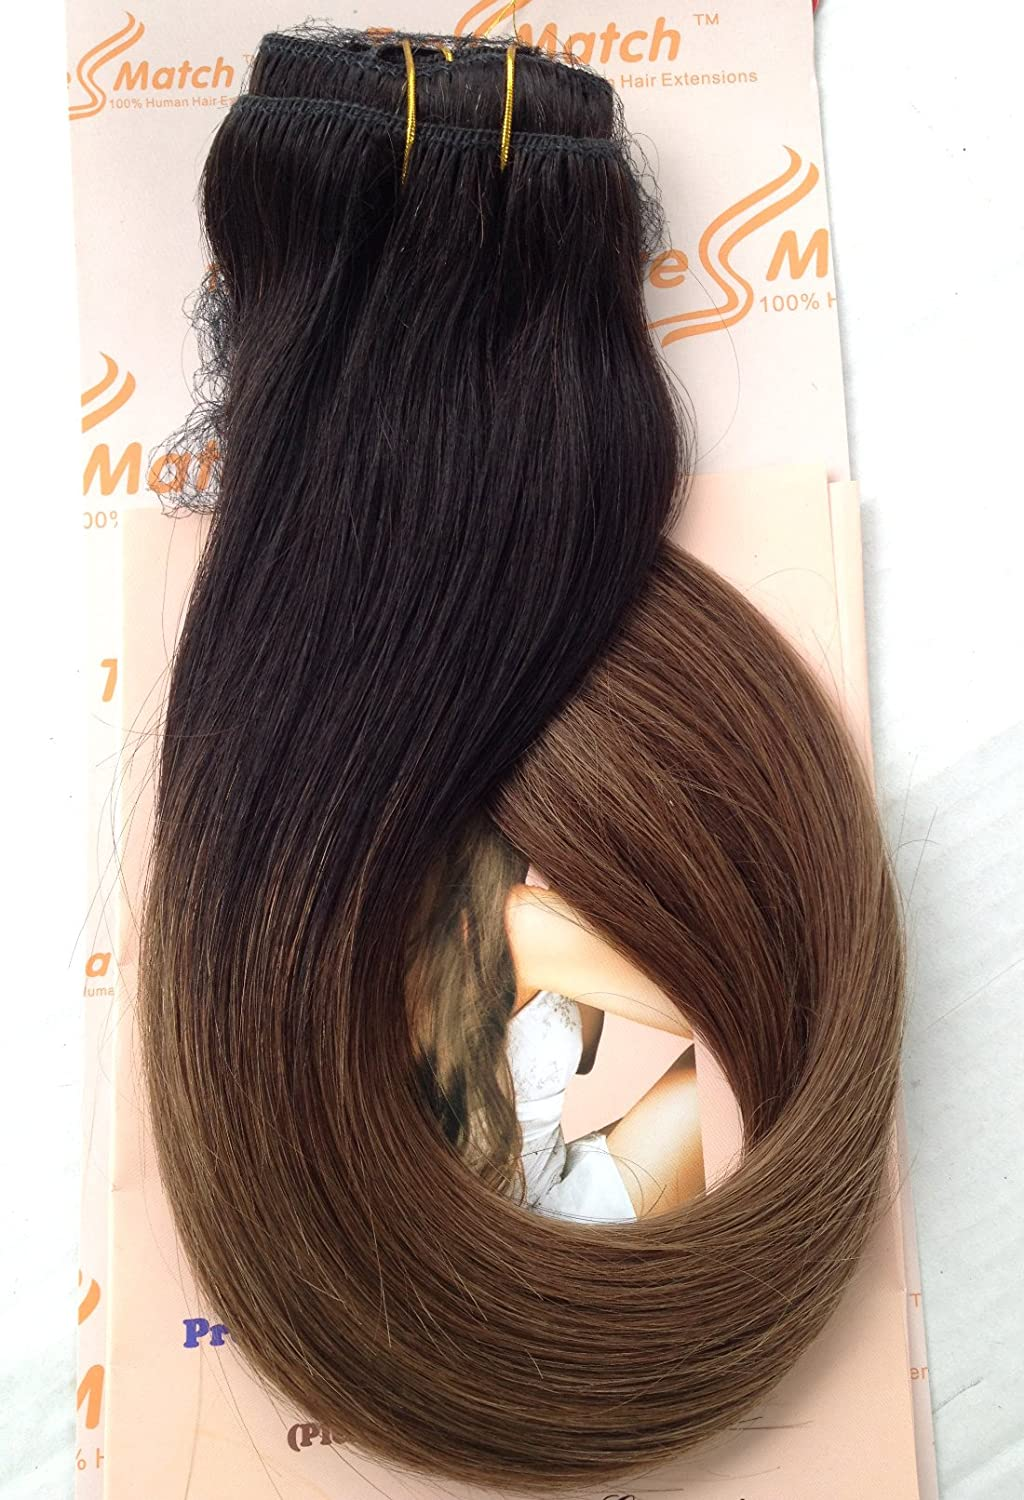 Amazon tressmatch 1618 remy human hair clip in amazon tressmatch 1618 remy human hair clip in extensions ombre off blackmediumchestnut brown full head volume set 9 piecespcs set pmusecretfo Gallery